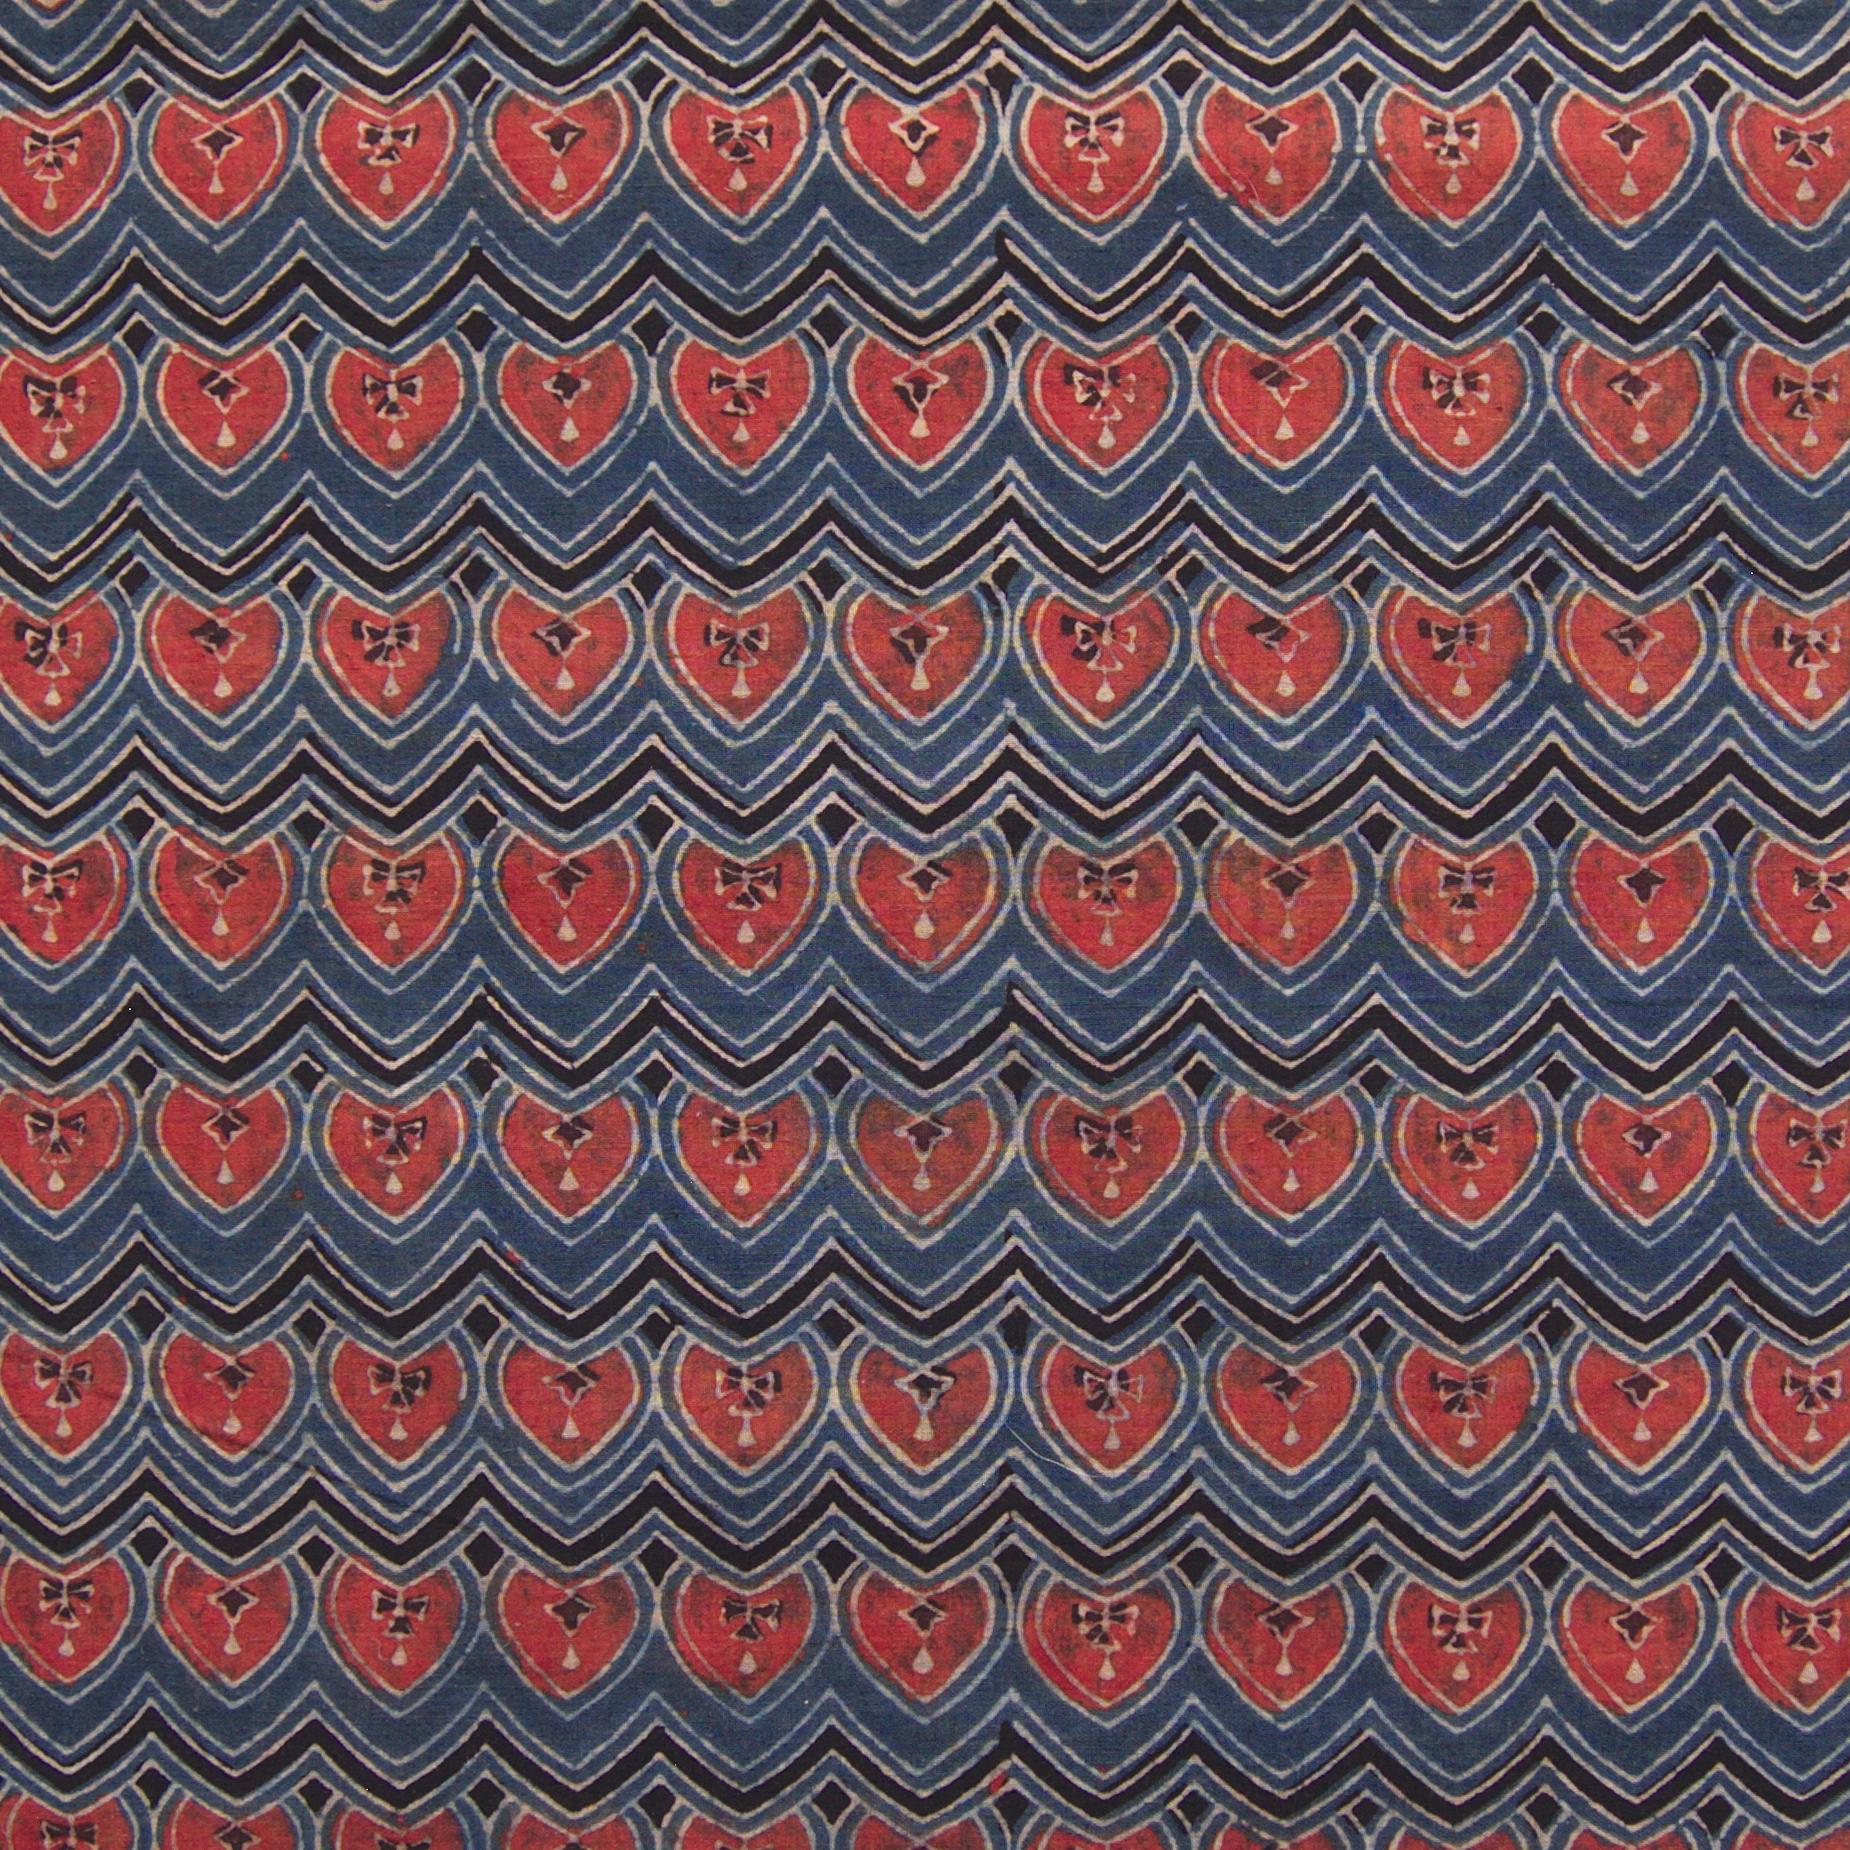 Block Printed Fabric, 100% Cotton, Ajrak Design: Indigo Blue Base, Black Wave, Red Spade. Close Up